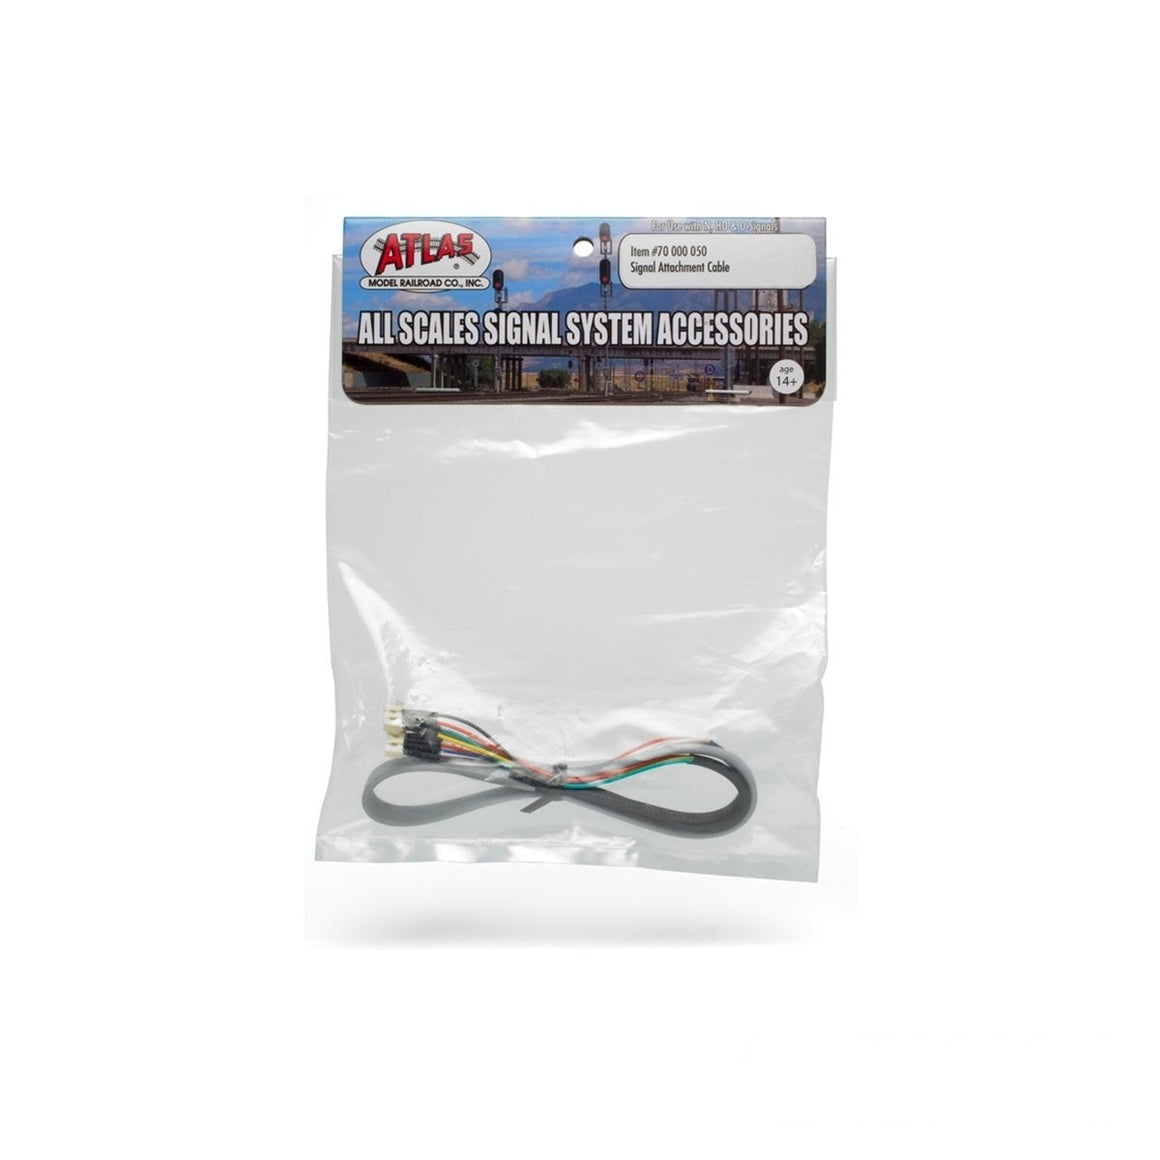 Atlas Signal System: Signal Attachment Cable